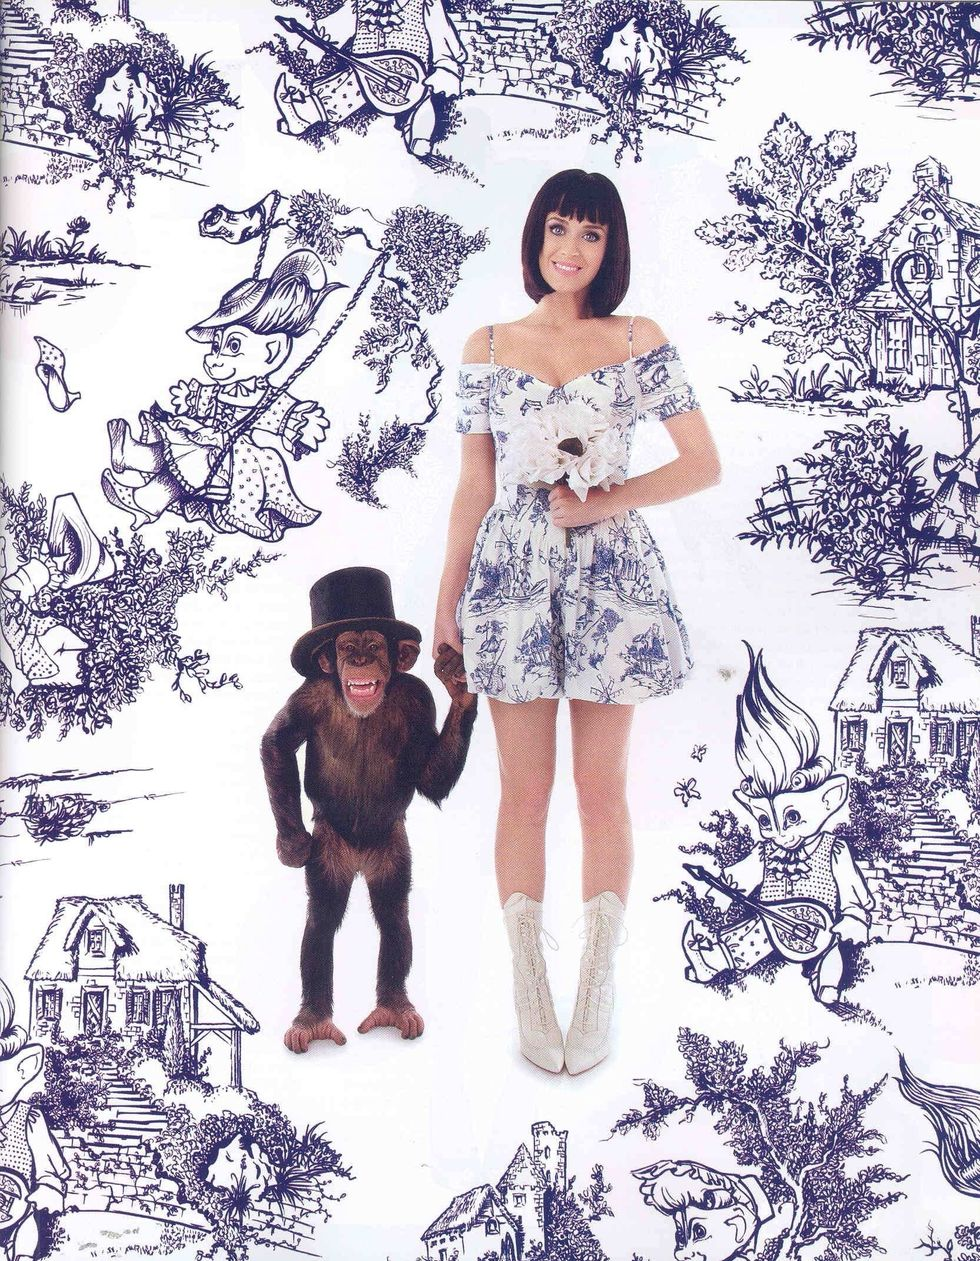 katy-perry-missbehave-magazine-spring-2009-01